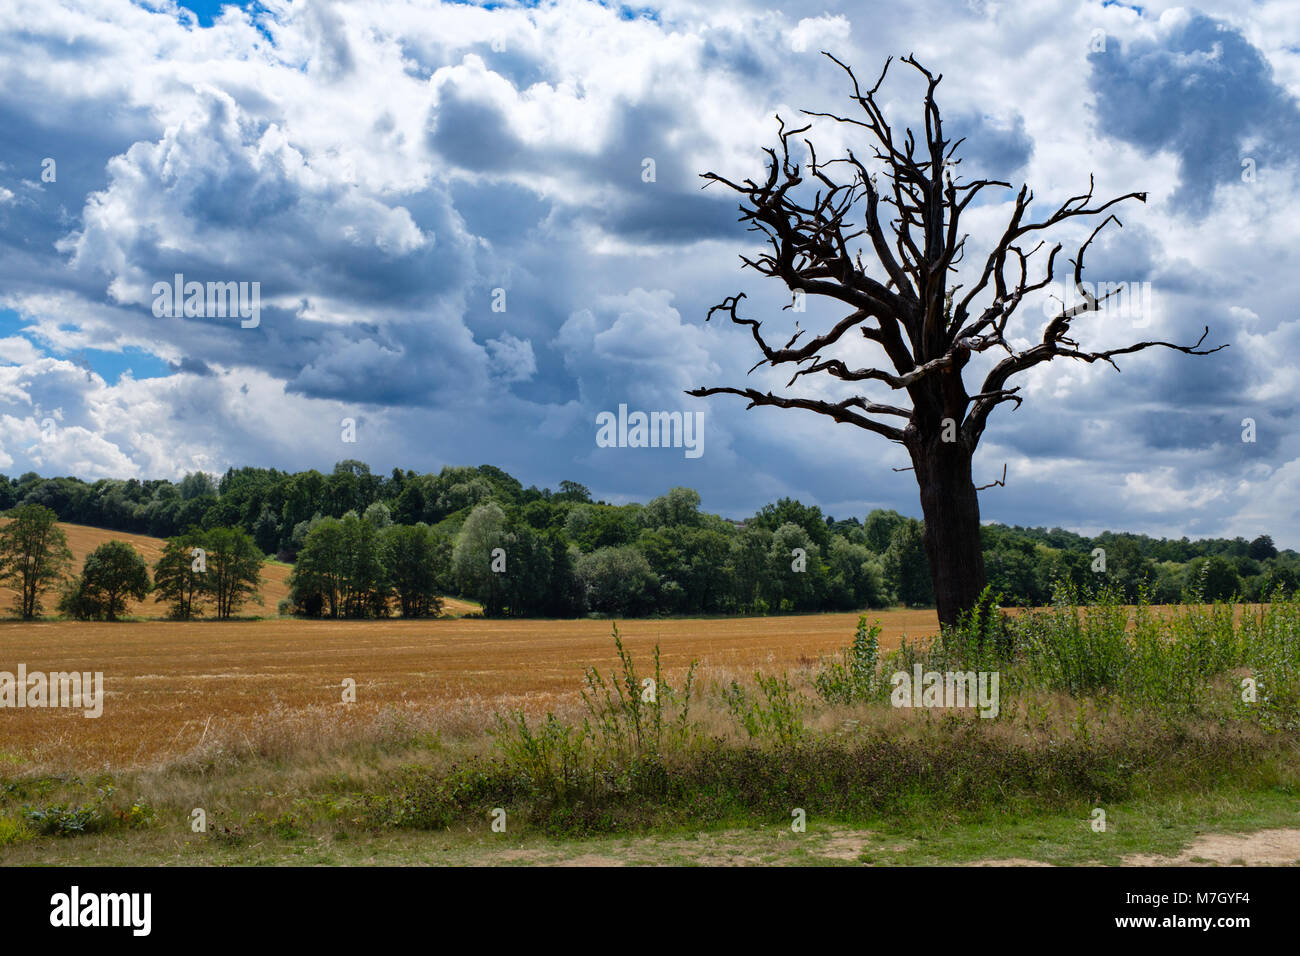 A landscape shot of an old weathered tree on farmland next to Trent Park, Hertfordshire, UK - Stock Image